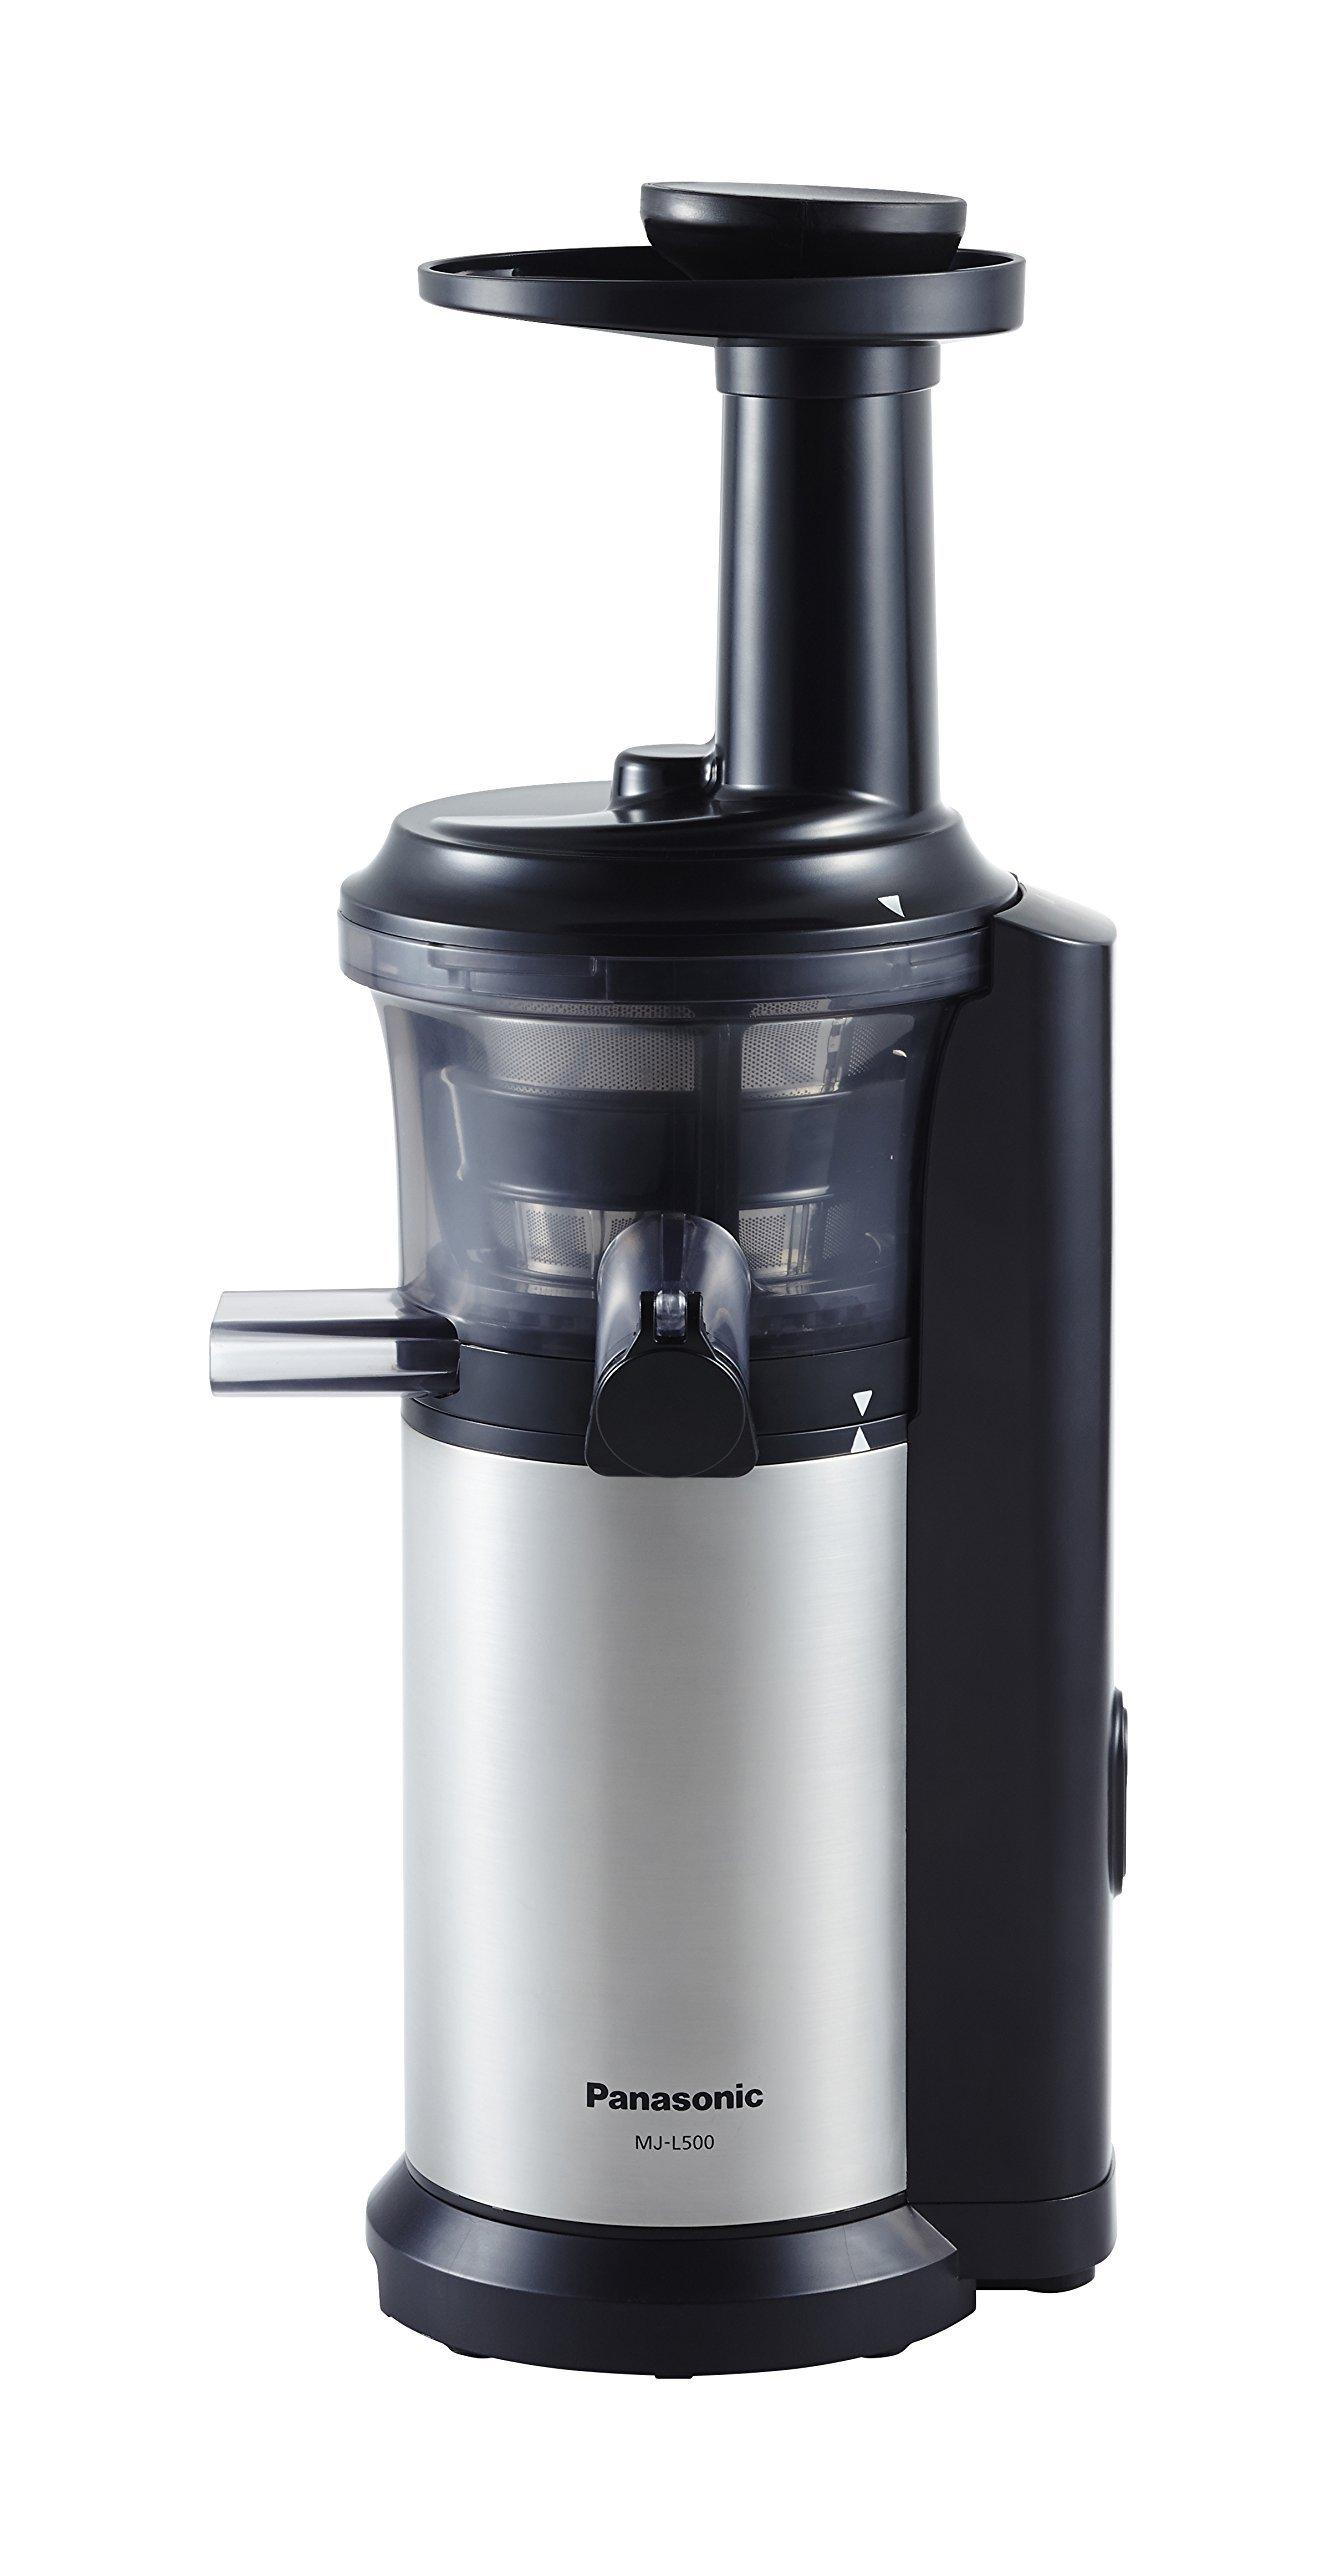 Panasonic MJ-L500 Slow Juicer with Frozen Treat Attachment, Black/Silver (Renewed) by Panasonic